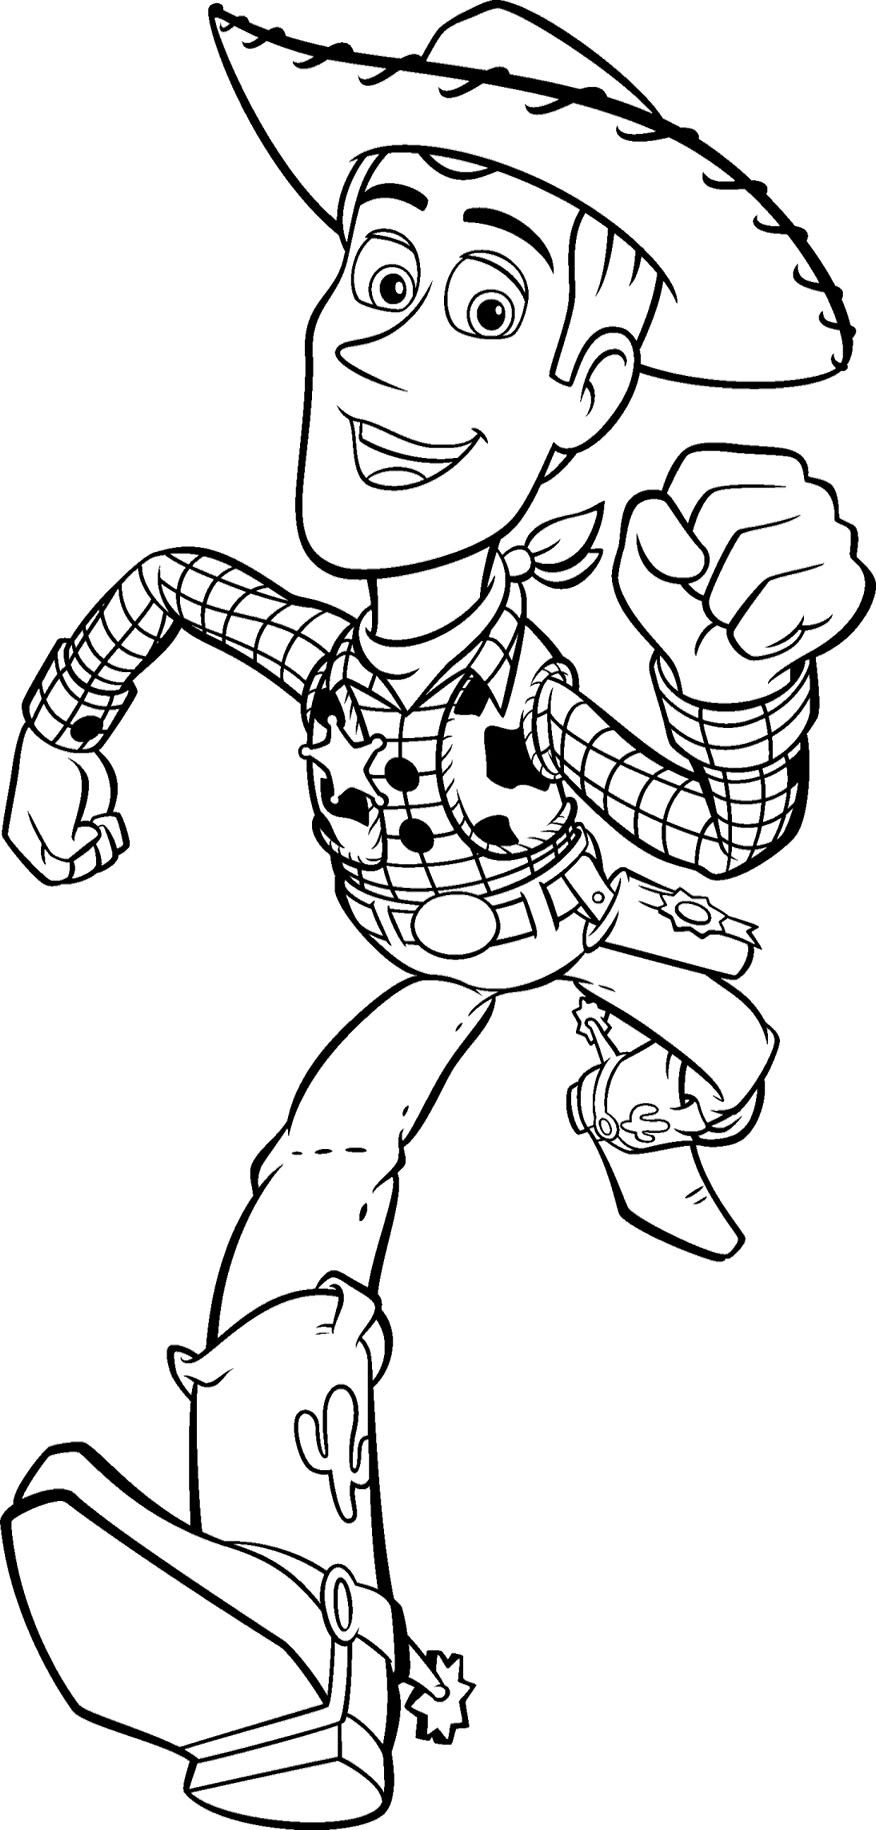 woody jessie coloring pages - photo#13